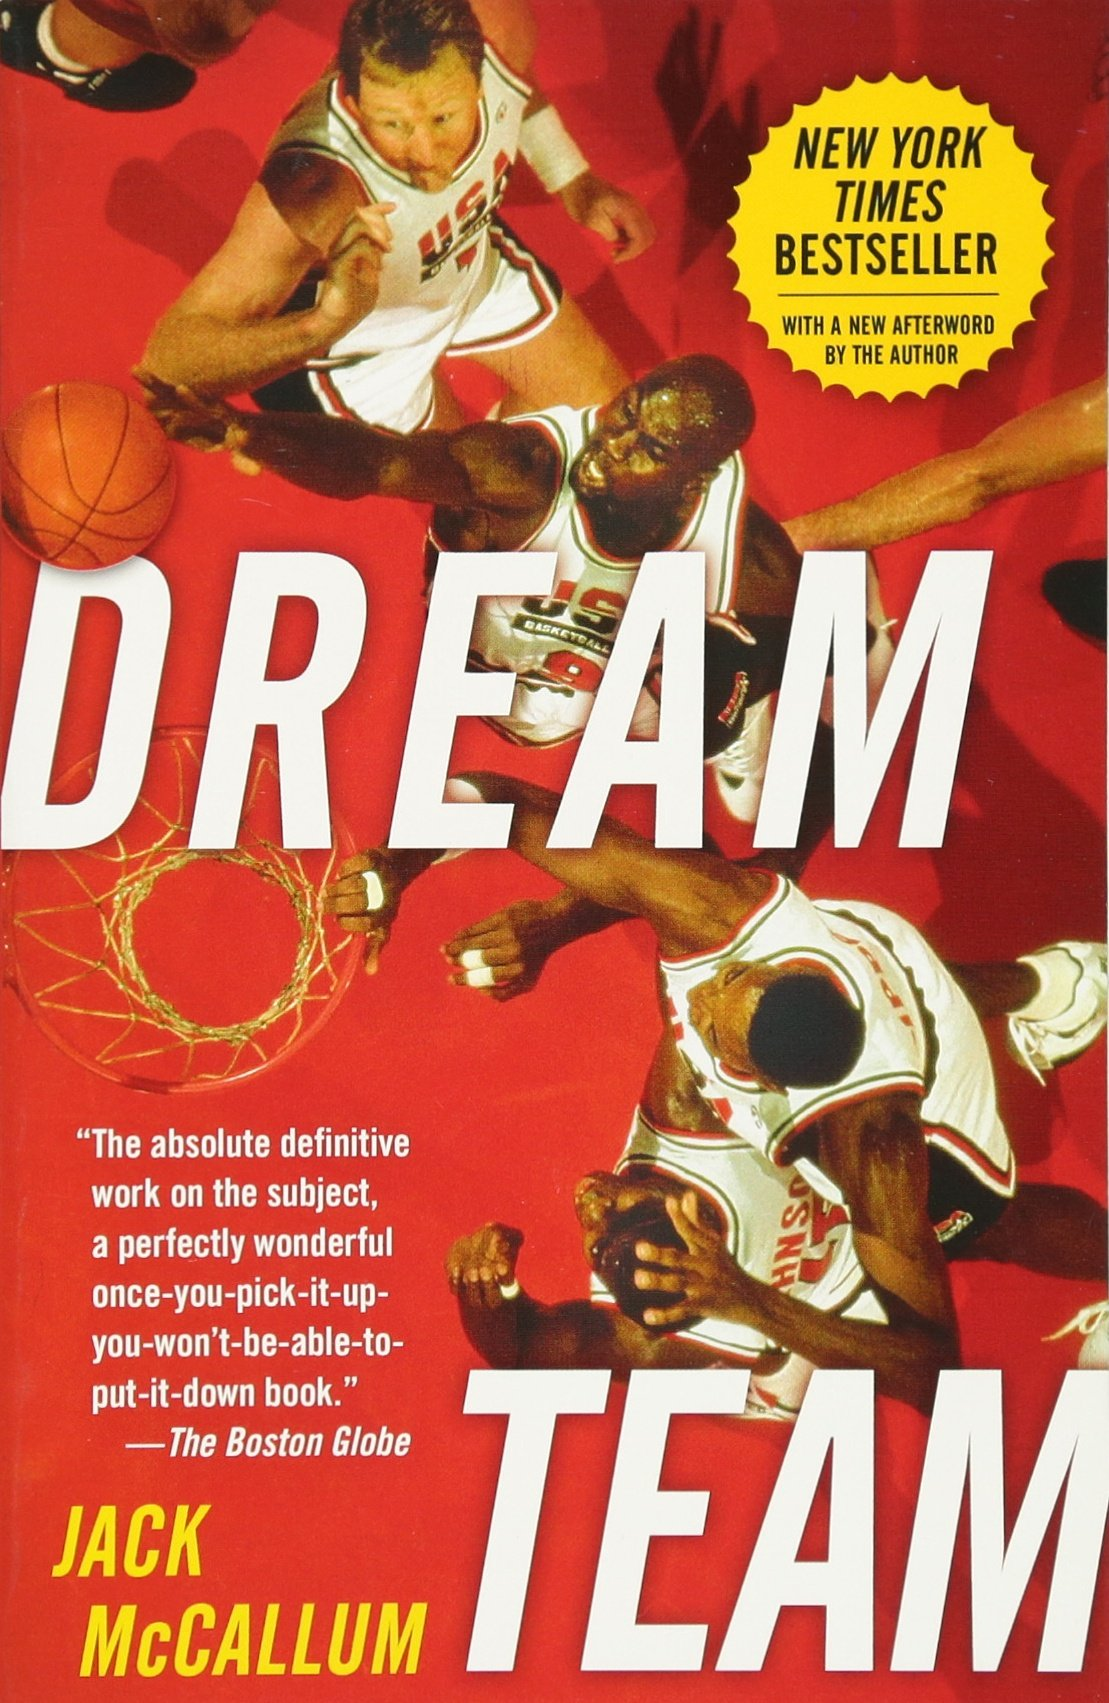 Larry, Charles, And The Greatest Team Of All Time Conquered The World  And Changed The Game Of Basketball Forever (9780345520494): Jack Mccallum:  Books